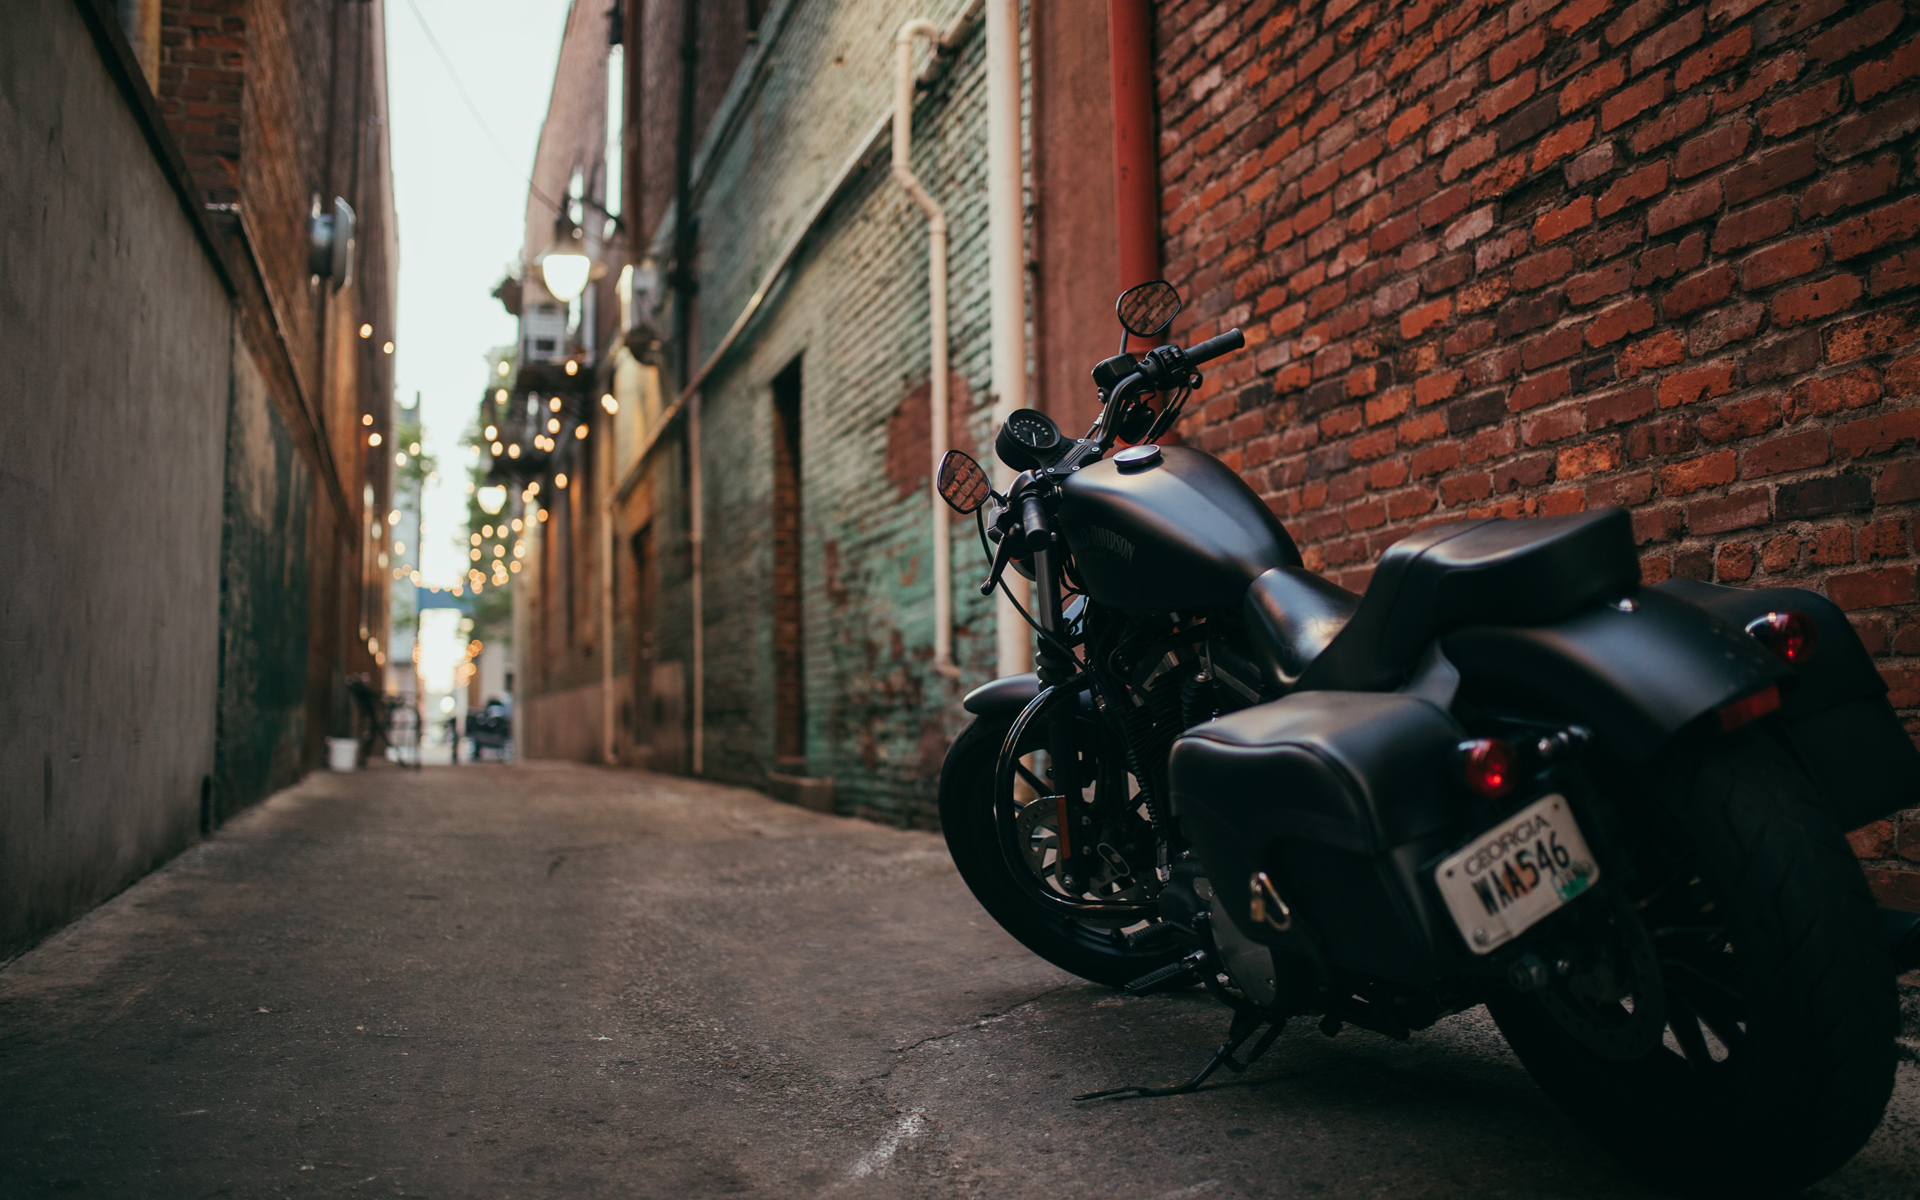 Motorcycle side view HD wallpaper | HD Latest Wallpapers